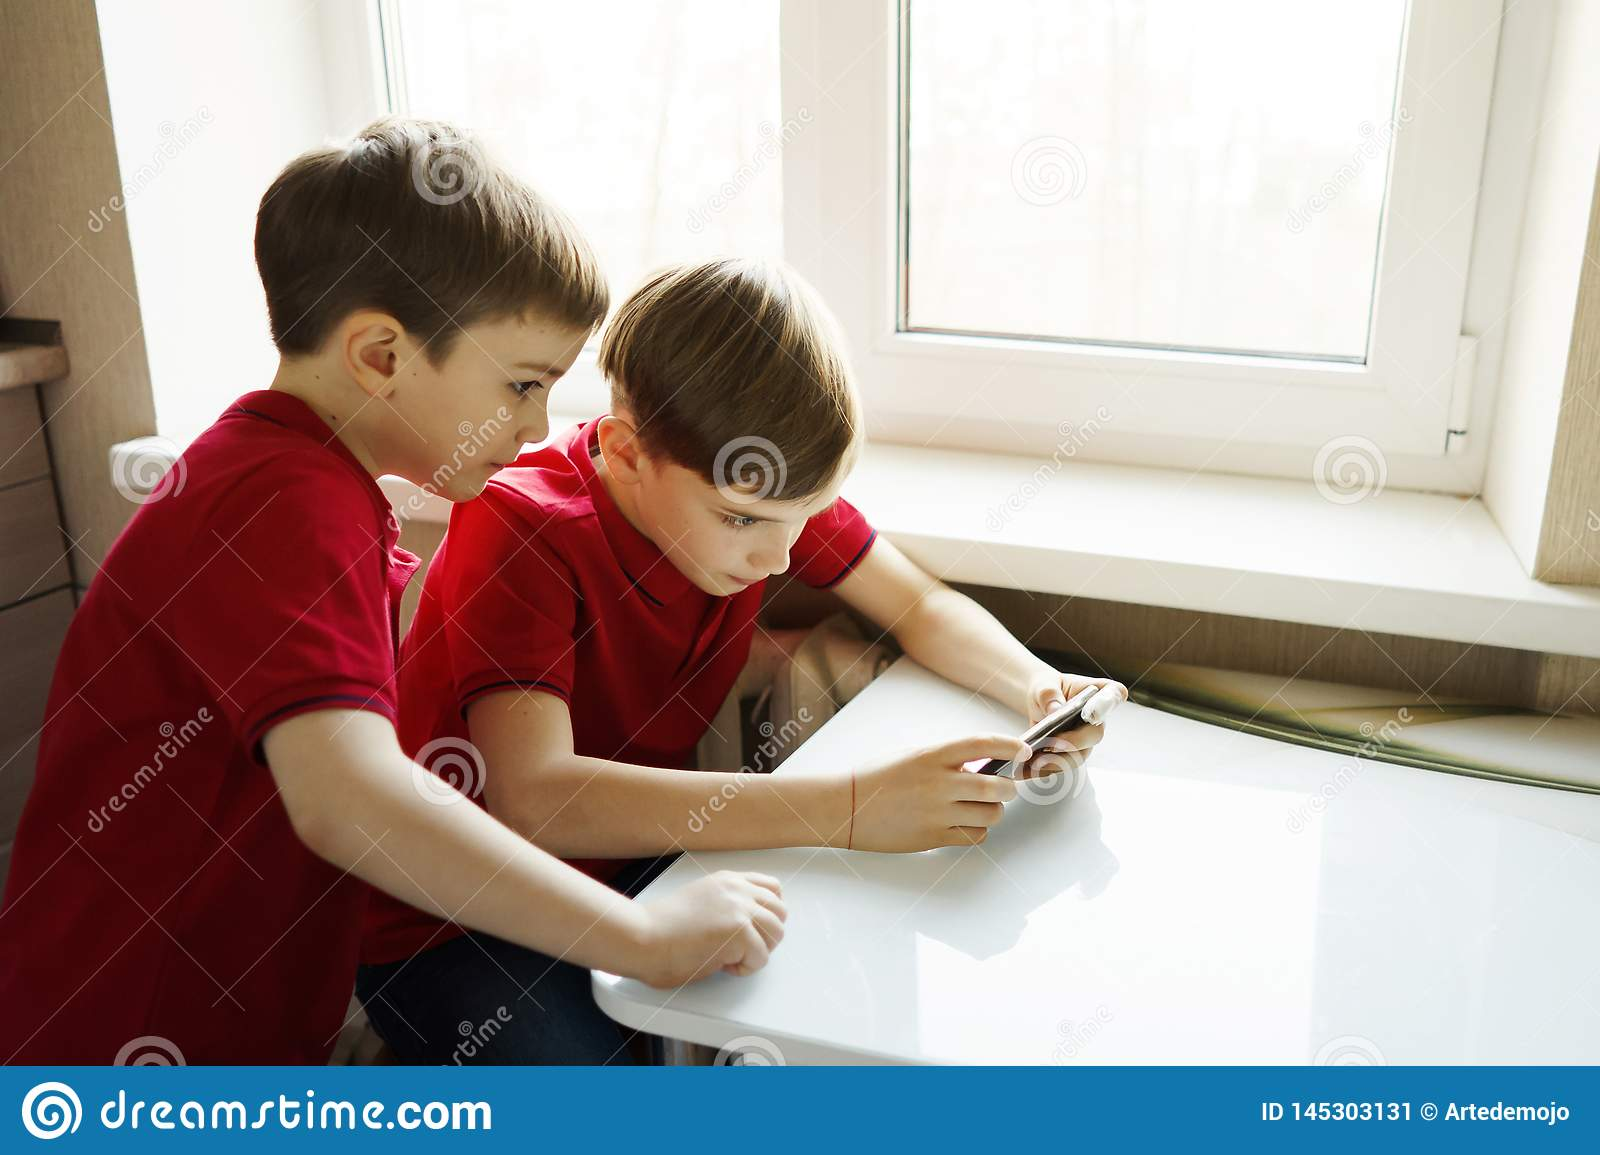 Two brothers are sitting in the kitchen and playing with the phone